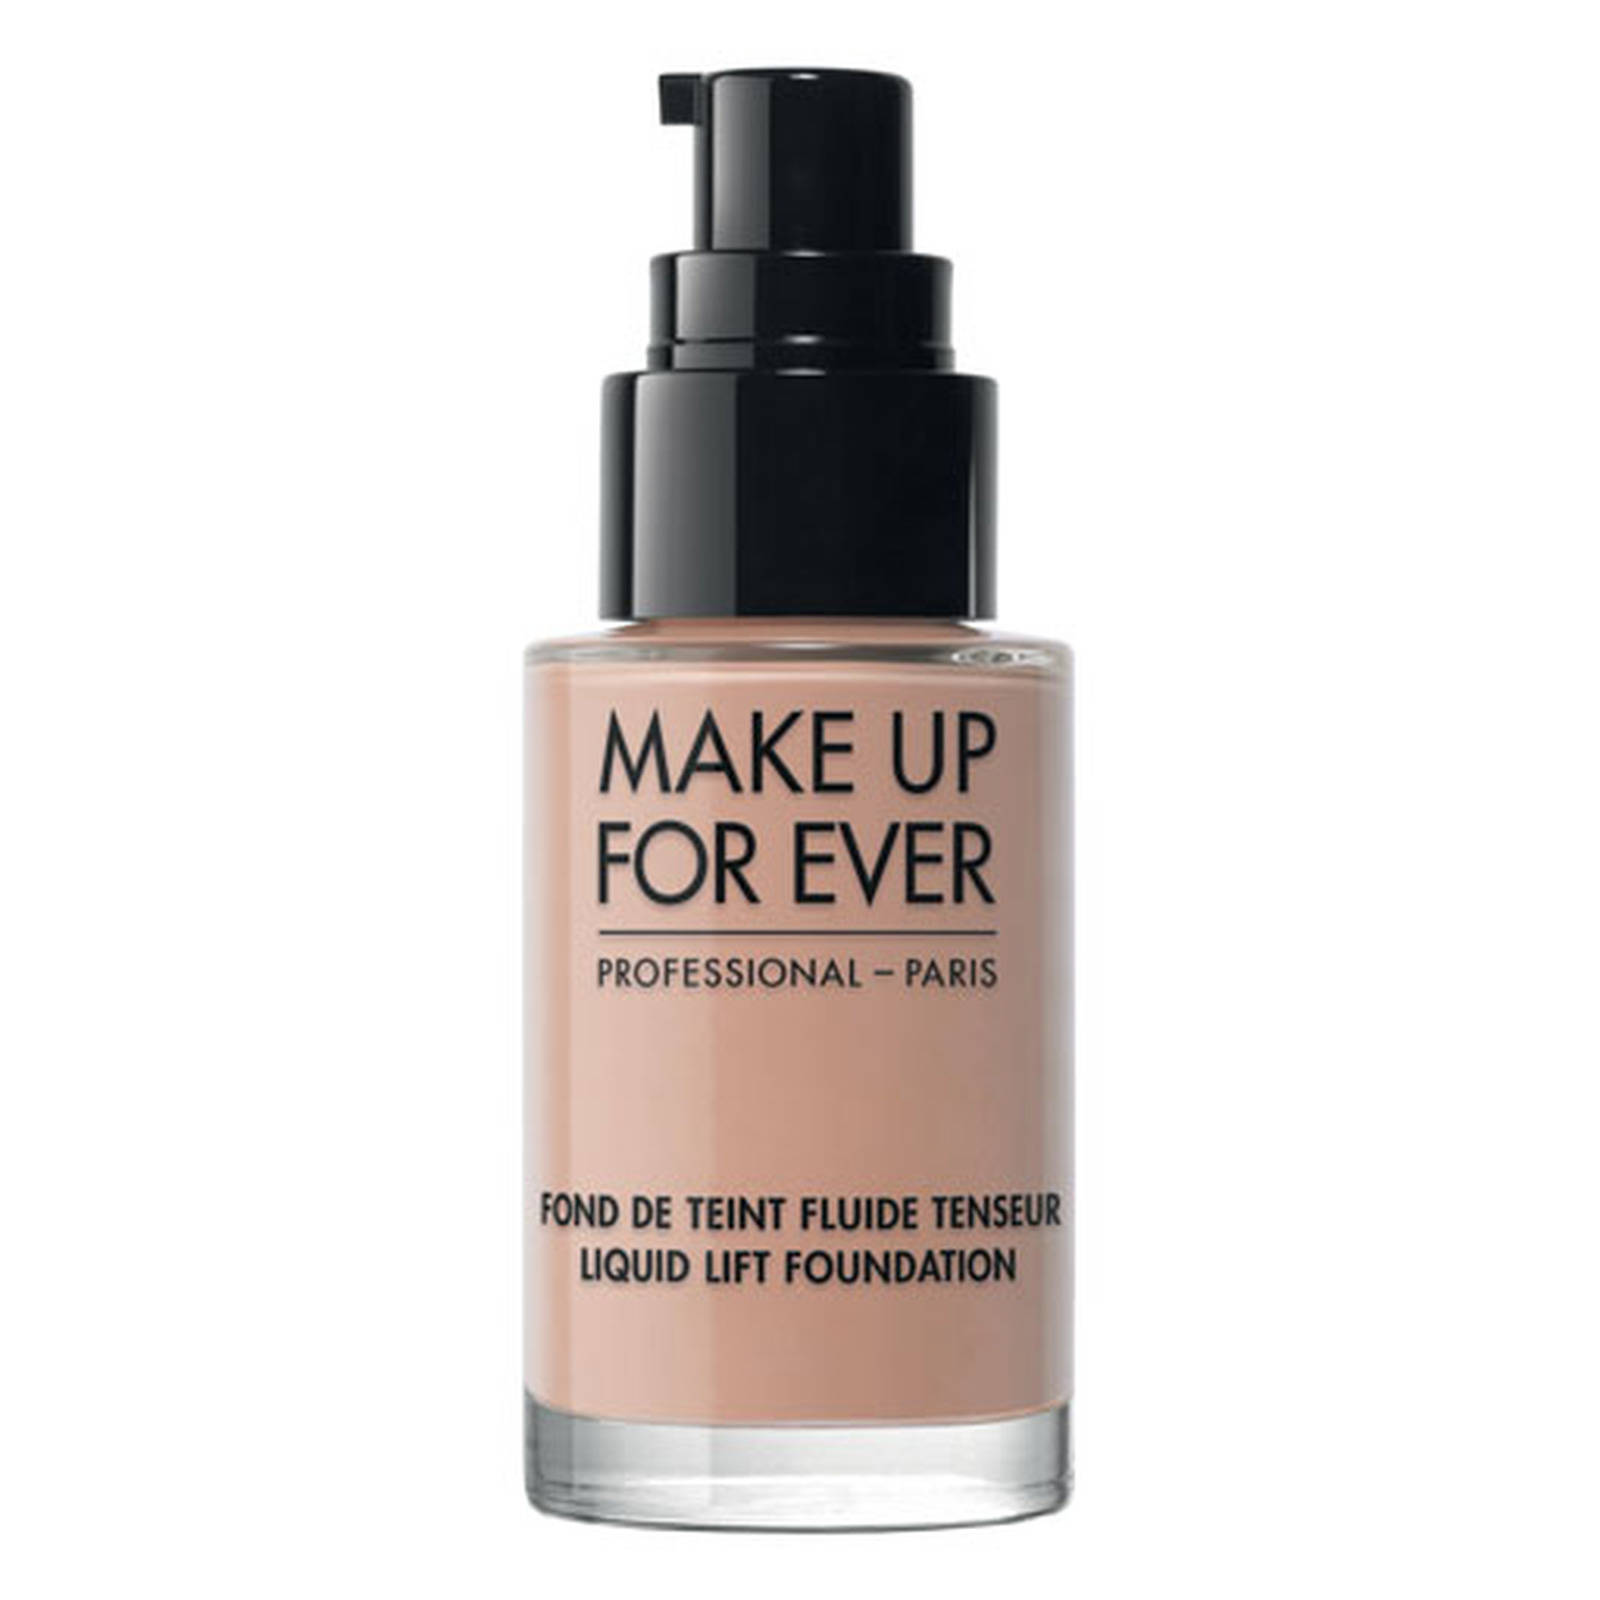 Ever Liquid Lift Foundations